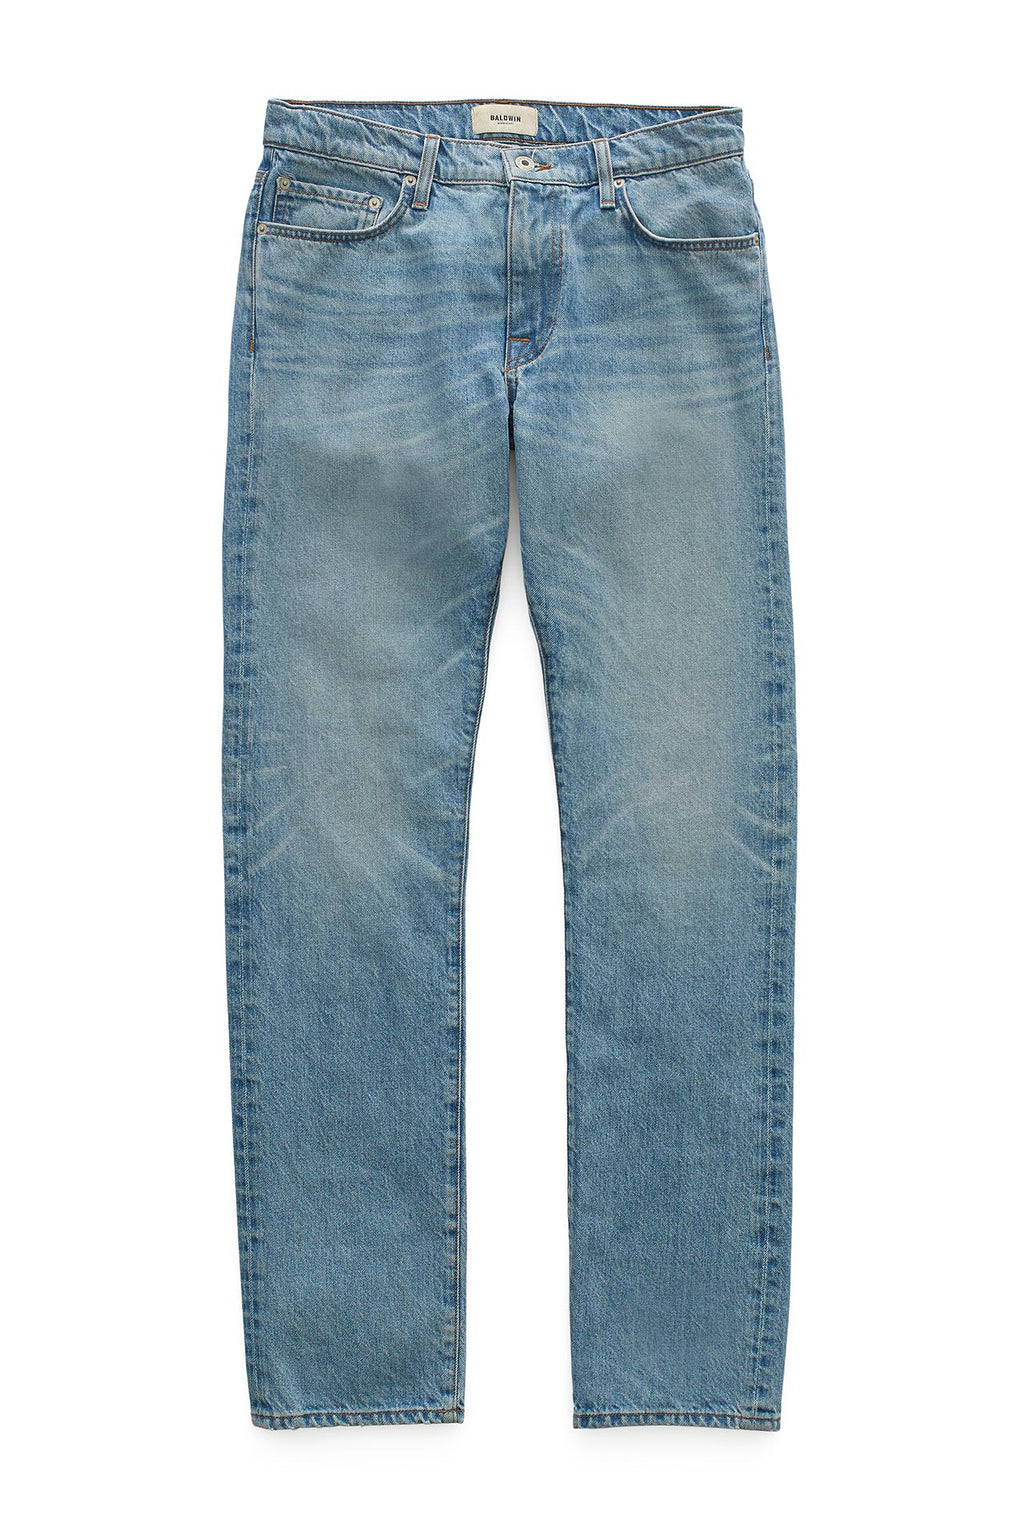 The Henley Jean in Drift